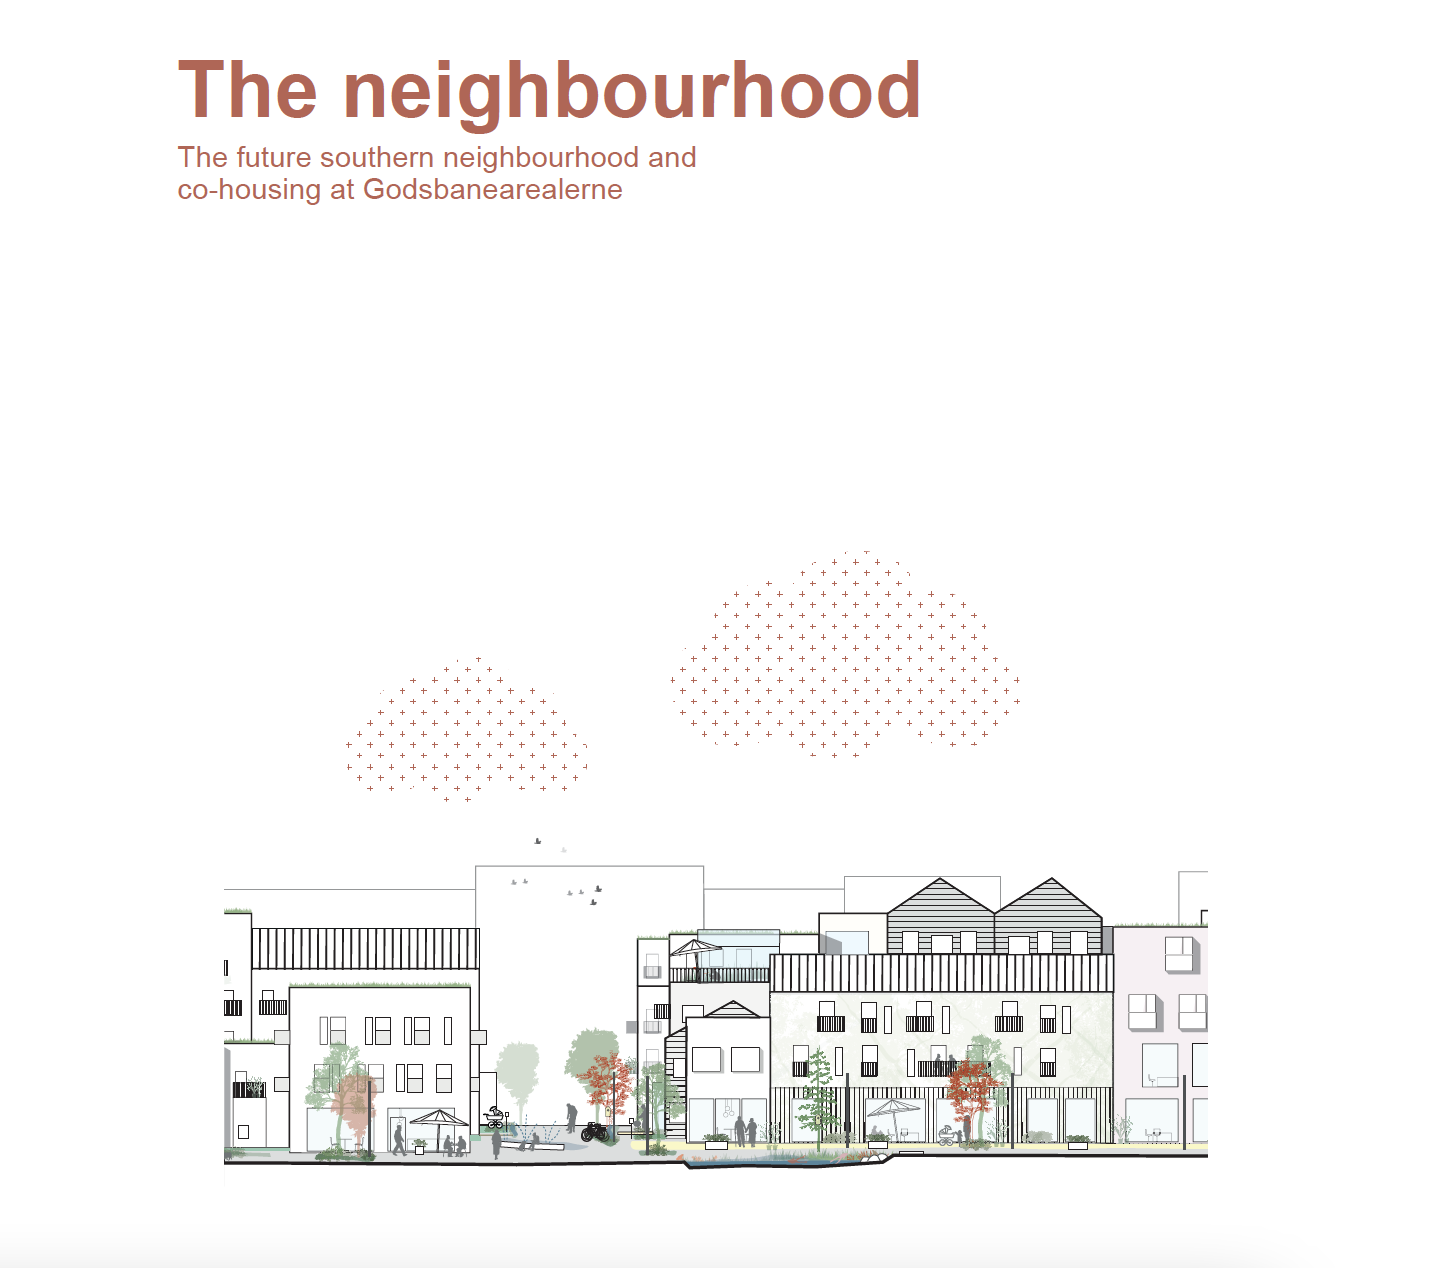 The_neighbourhood_The_future_southern_neighbourhood_and_co_housing_at_Godsbanearealerne_udsnit_fra_forside.png